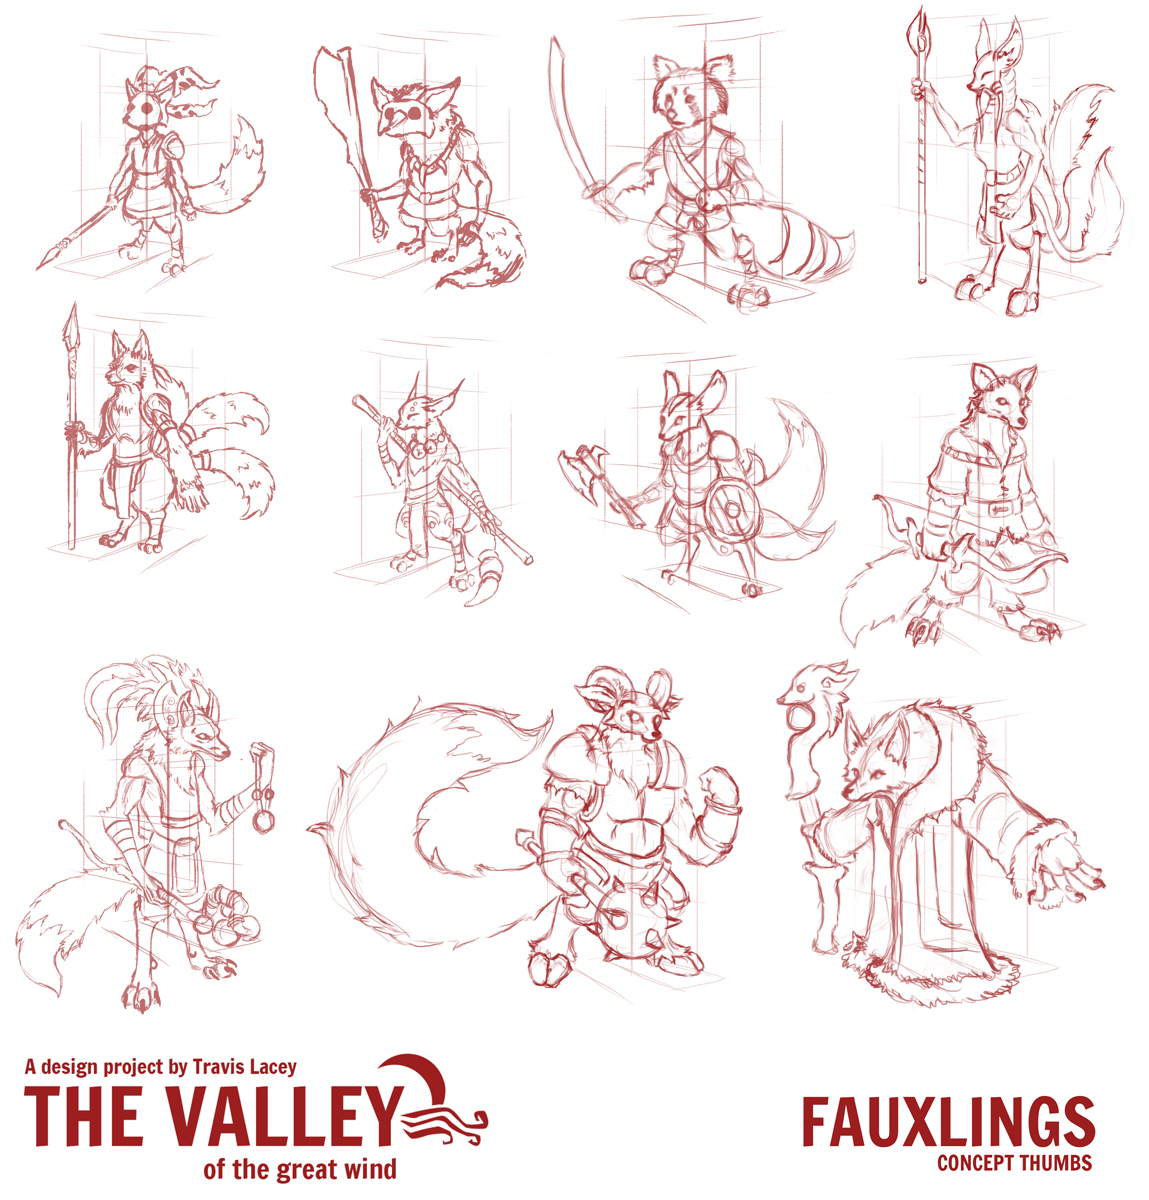 Fauxlings_Thumbs_Concept_Art_Travis_Lacey_The_Valley_Of_Fox_Creature_art